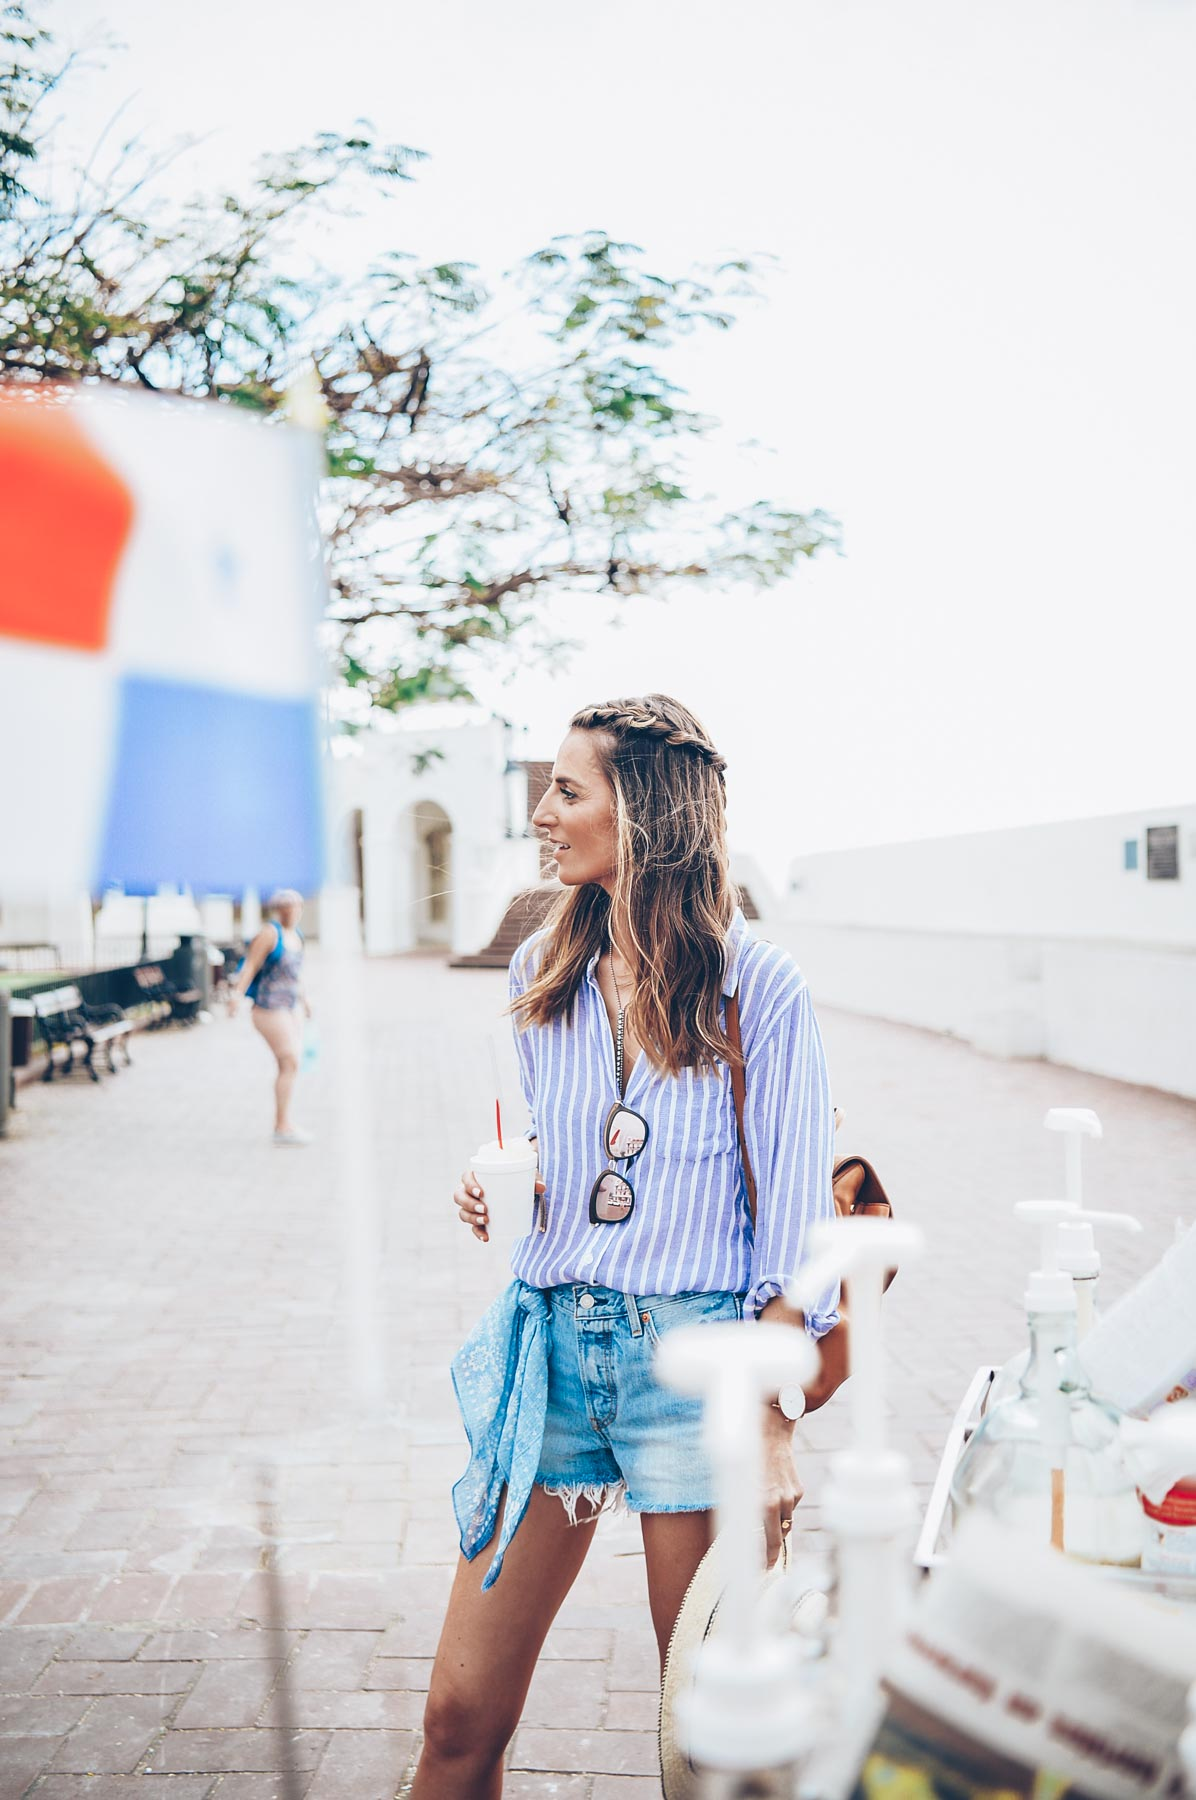 Jess Kirby exploring Casco Viejo in levis cutoff shorts and a stripe shirt